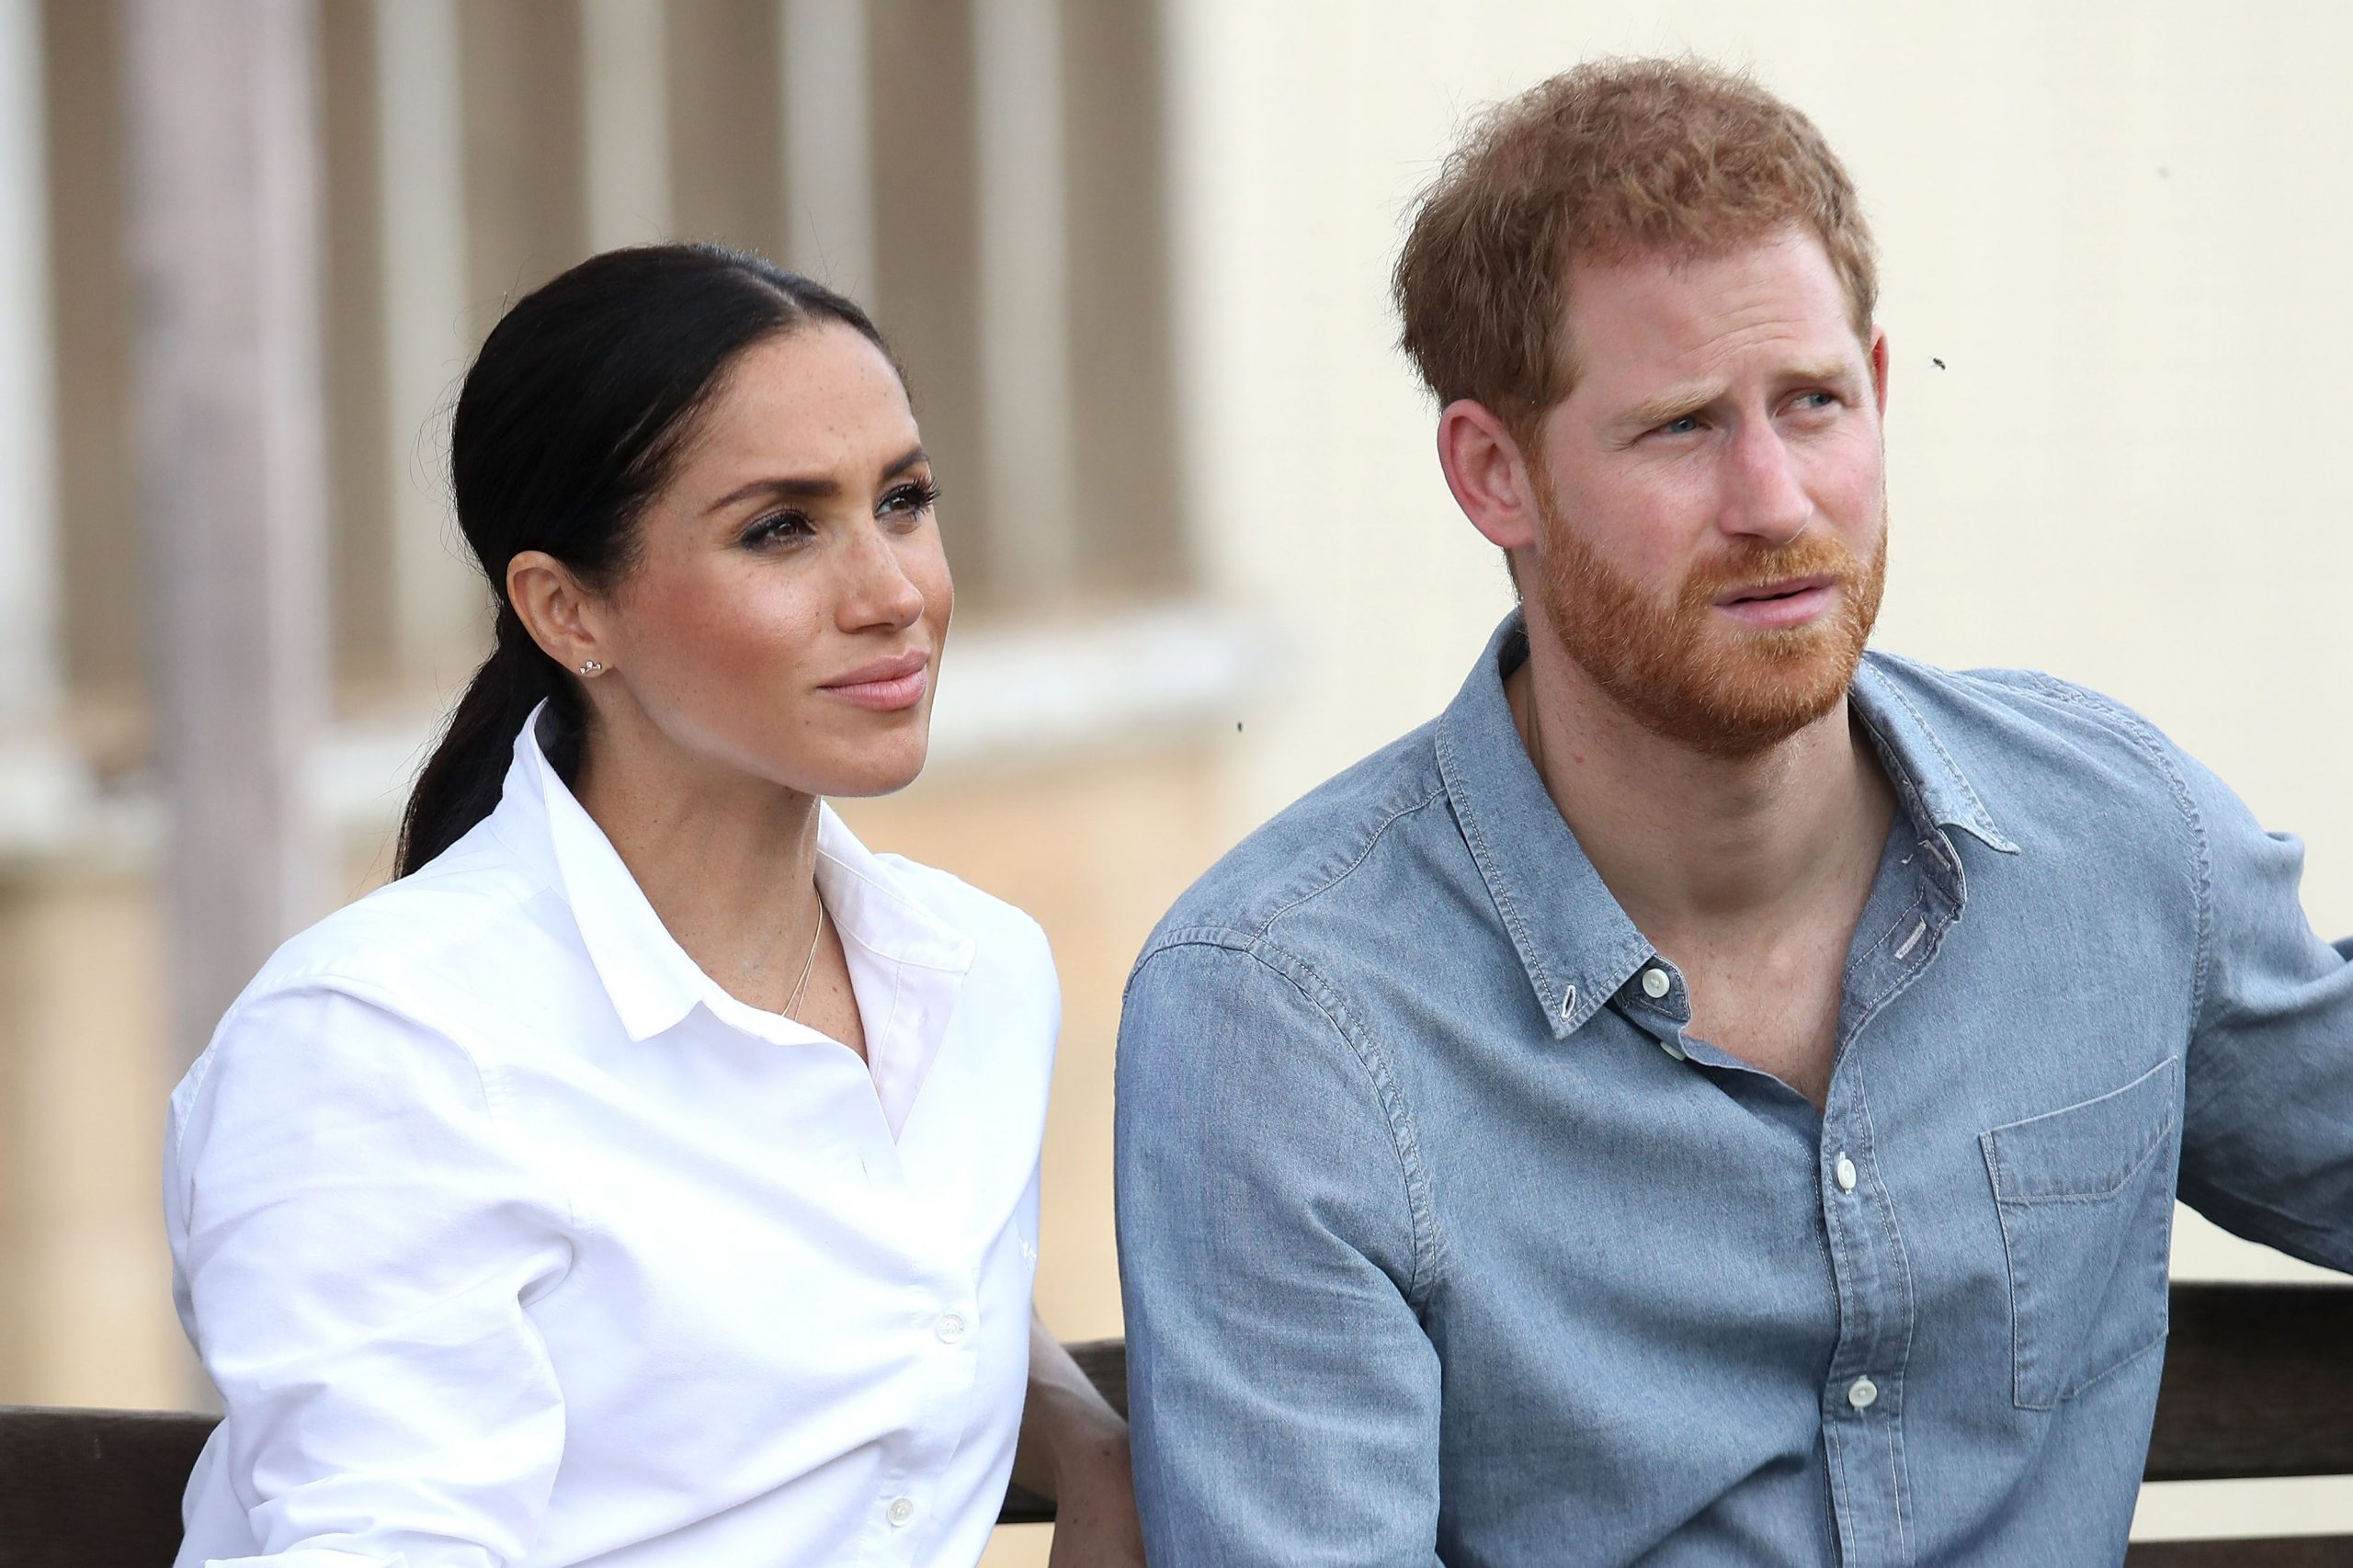 'Royal' brand ban: The Queen does not own the word, nothing legally stopping use of it – Prince Harry, Meghan Markle